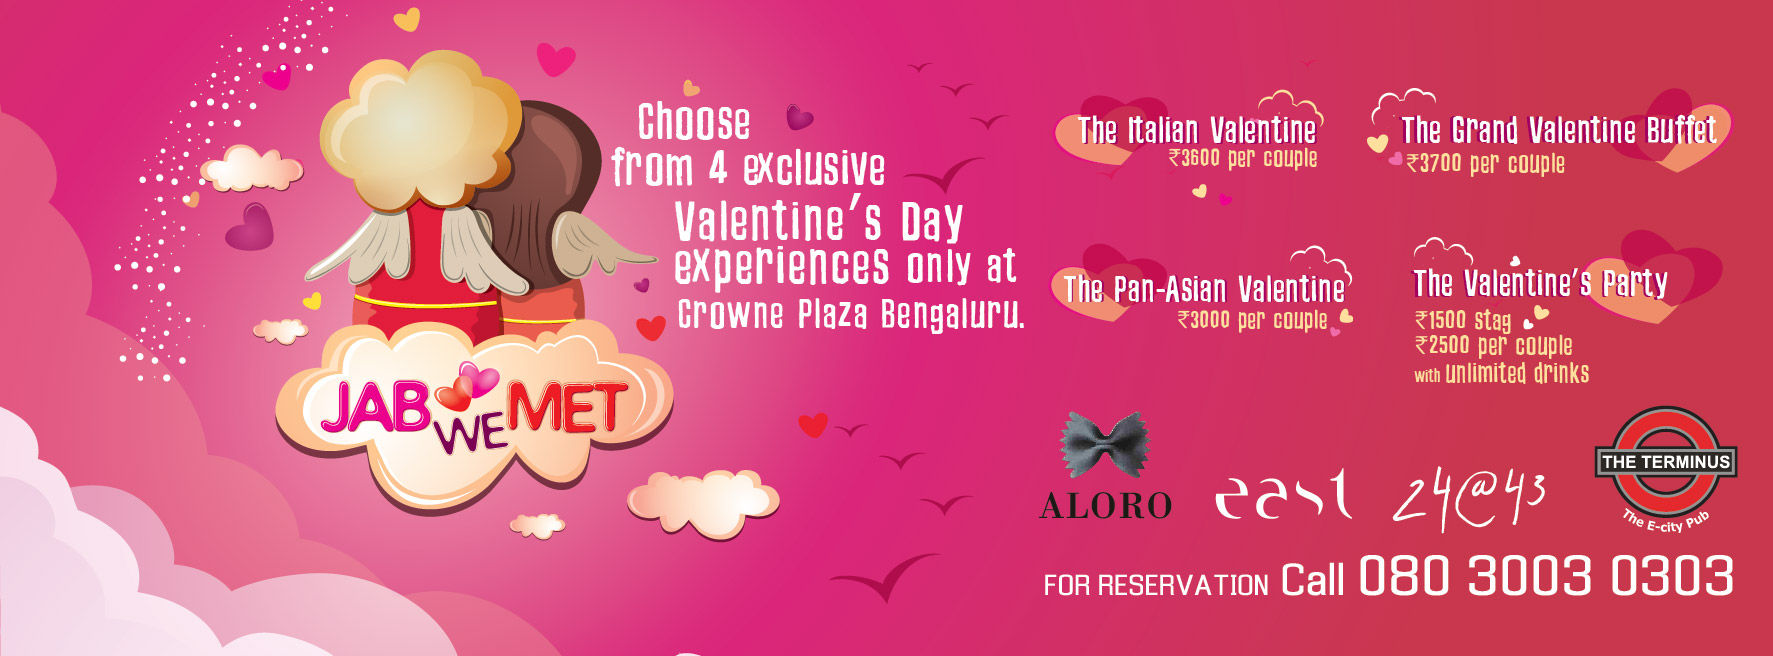 Crowne Plaza - Jab We Met V-Day Party